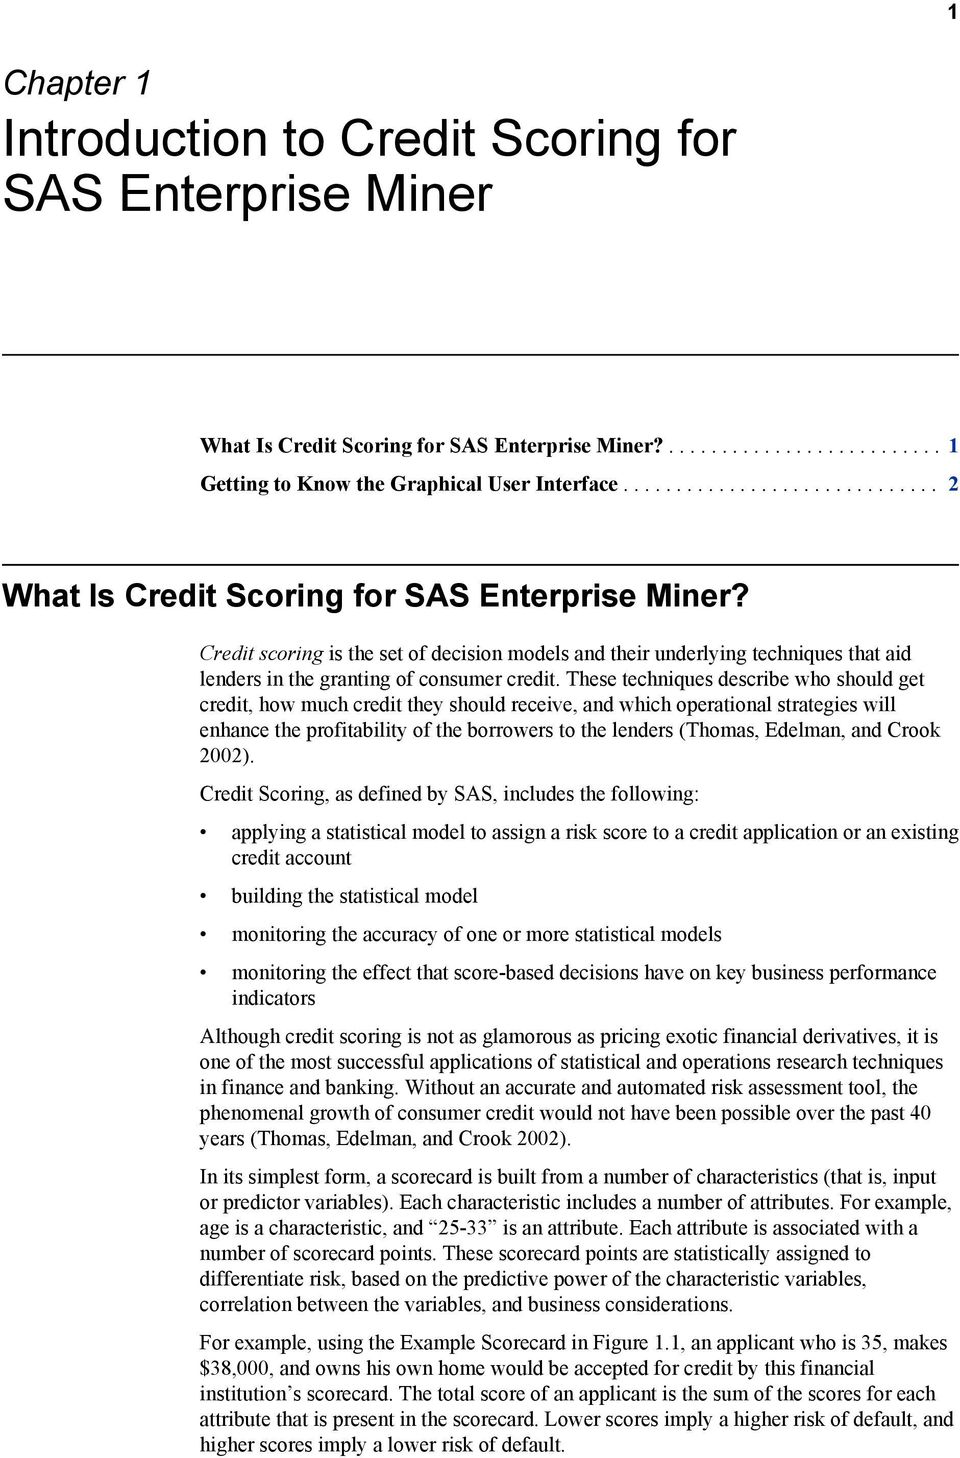 Credit scoring is the set of decision models and their underlying techniques that aid lenders in the granting of consumer credit.